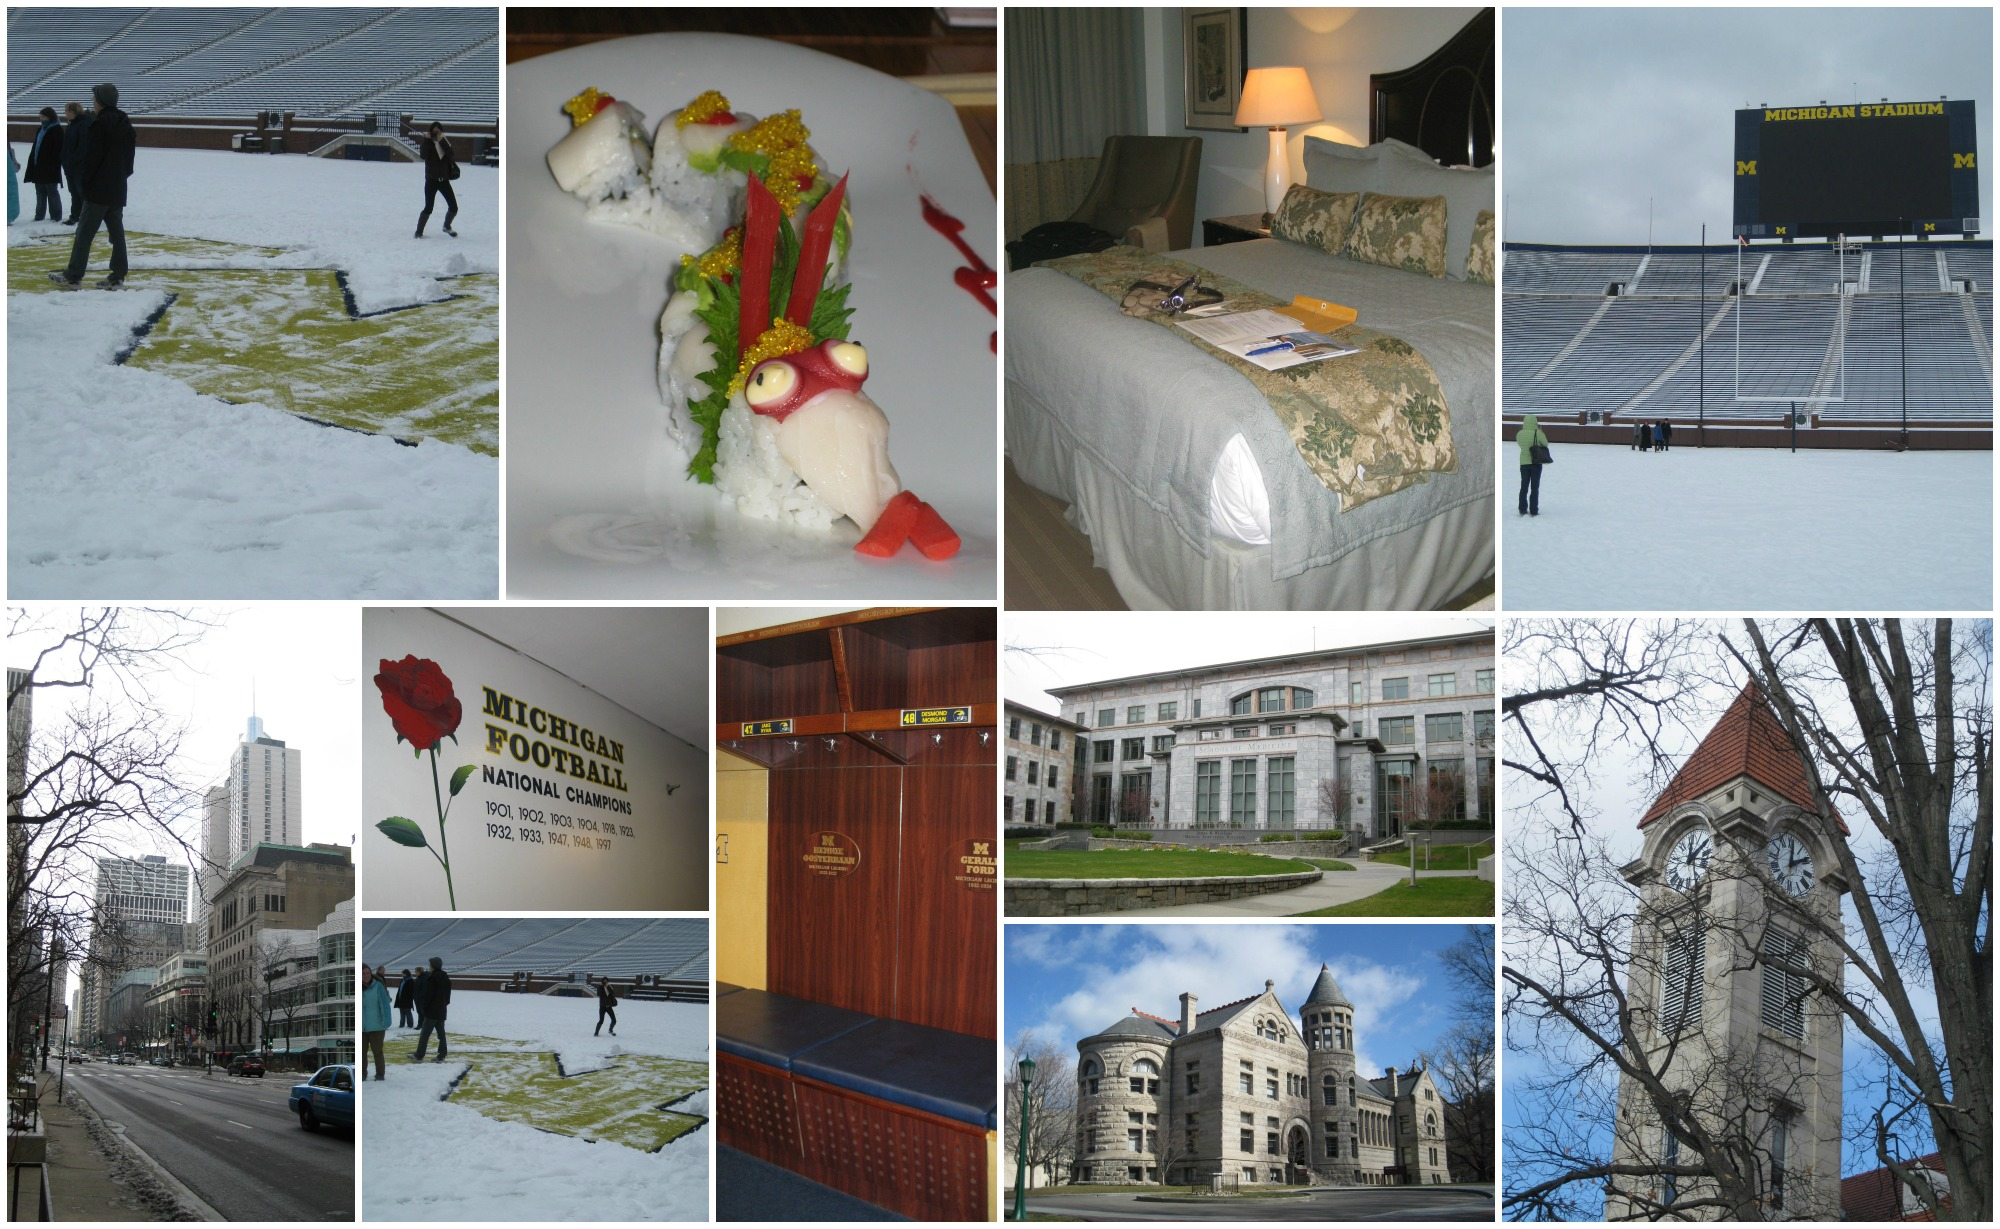 Recruitment was a BLAST! You will get to experience TONS of great activities, food, and new places! We got to tour the BIG HOUSE at Michigan in the snow - they even shoveled off the M for us! Getting to be put up in amazing hotel rooms, eating delicious foods, seeing some of the most immaculate college campuses I've every experienced (OMG - the limestone at Indiana was beautiful!)...Can't beat it!